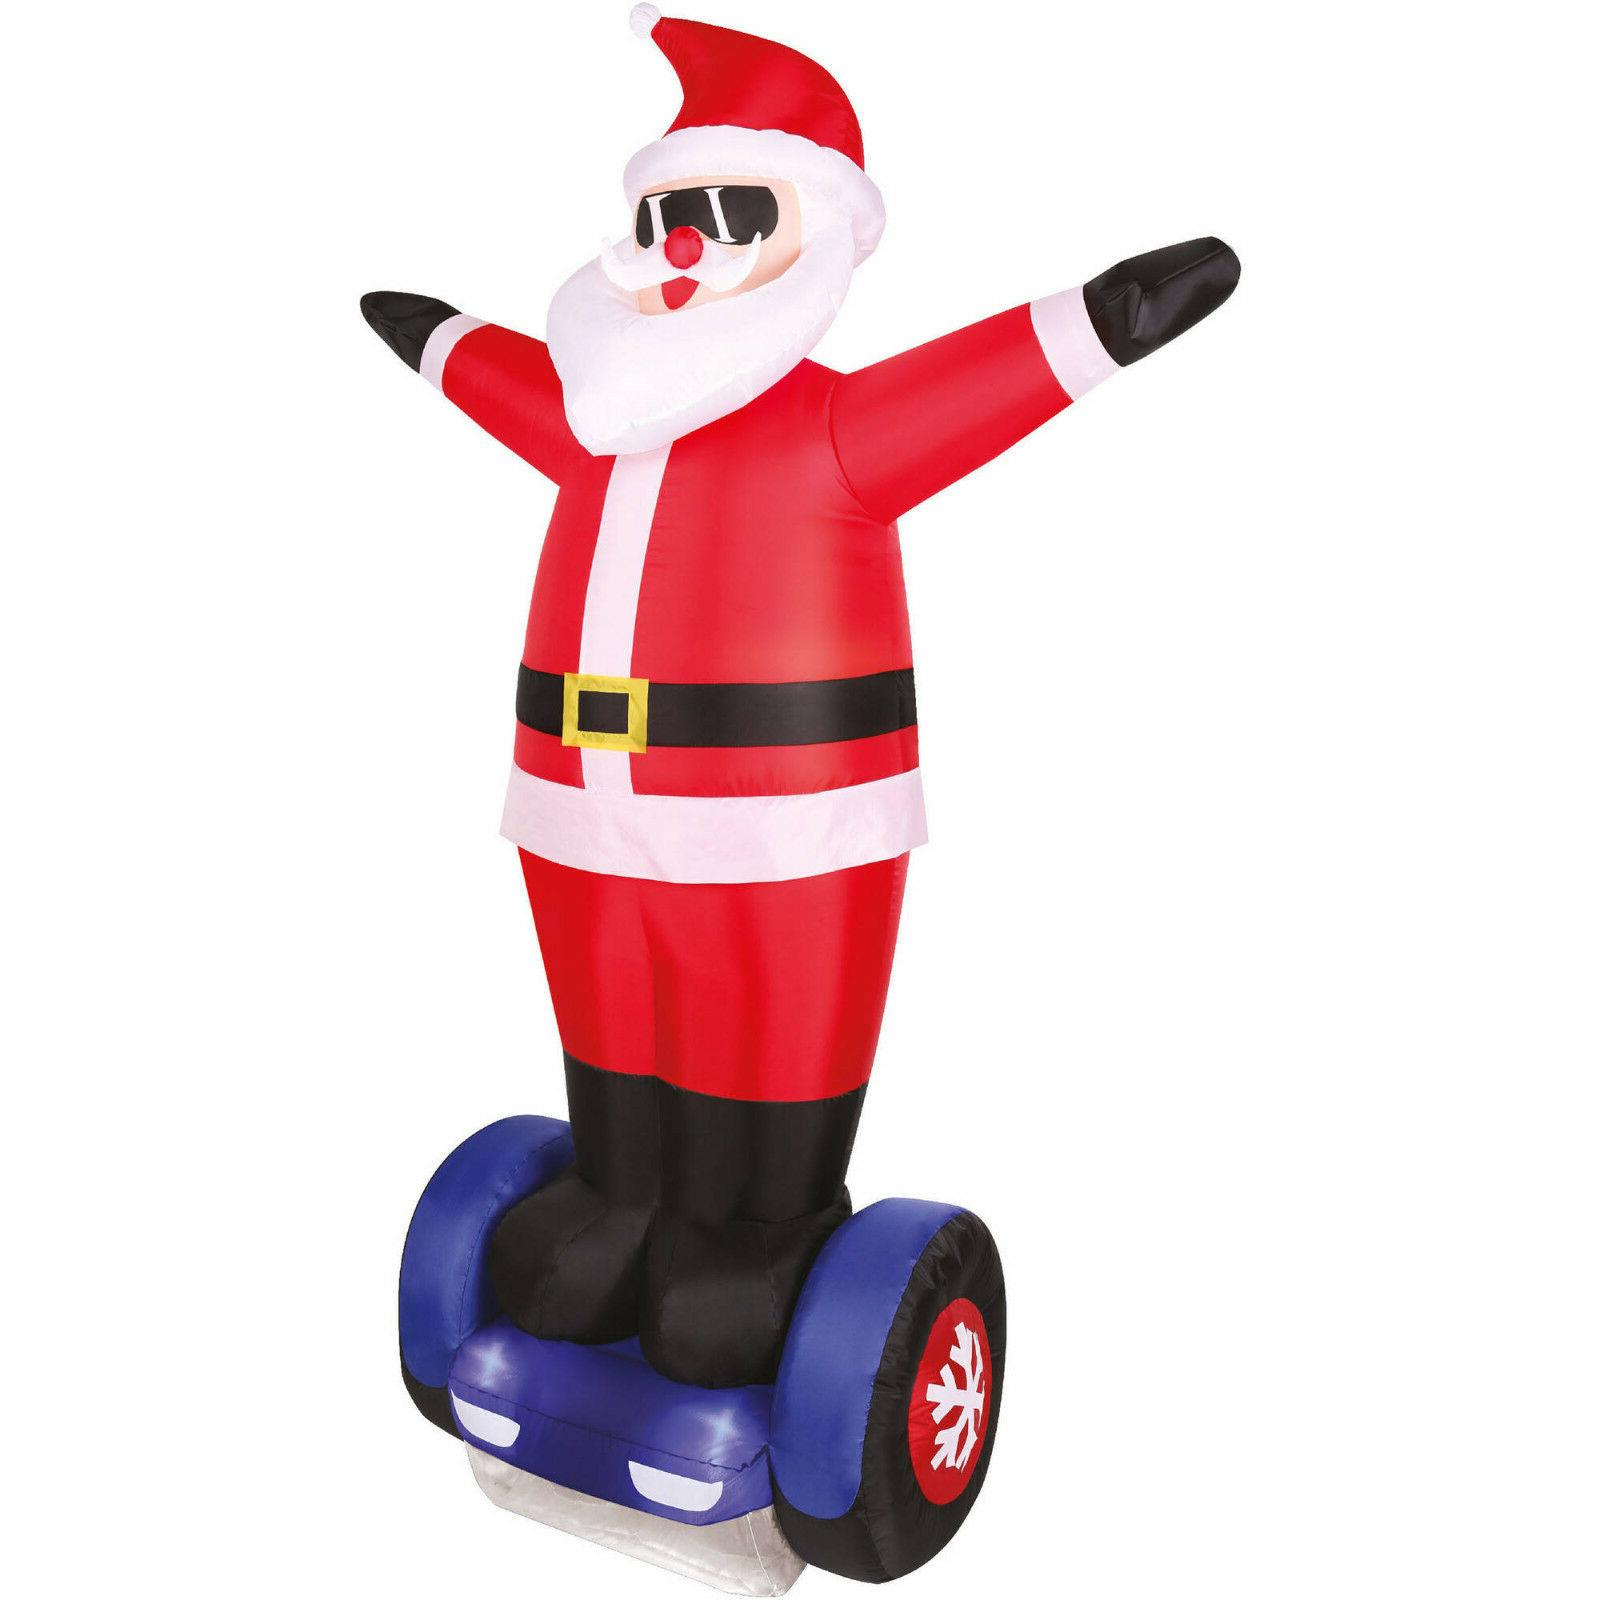 New 7' Airblown Self Inflatable Hover Santa lighted Christma